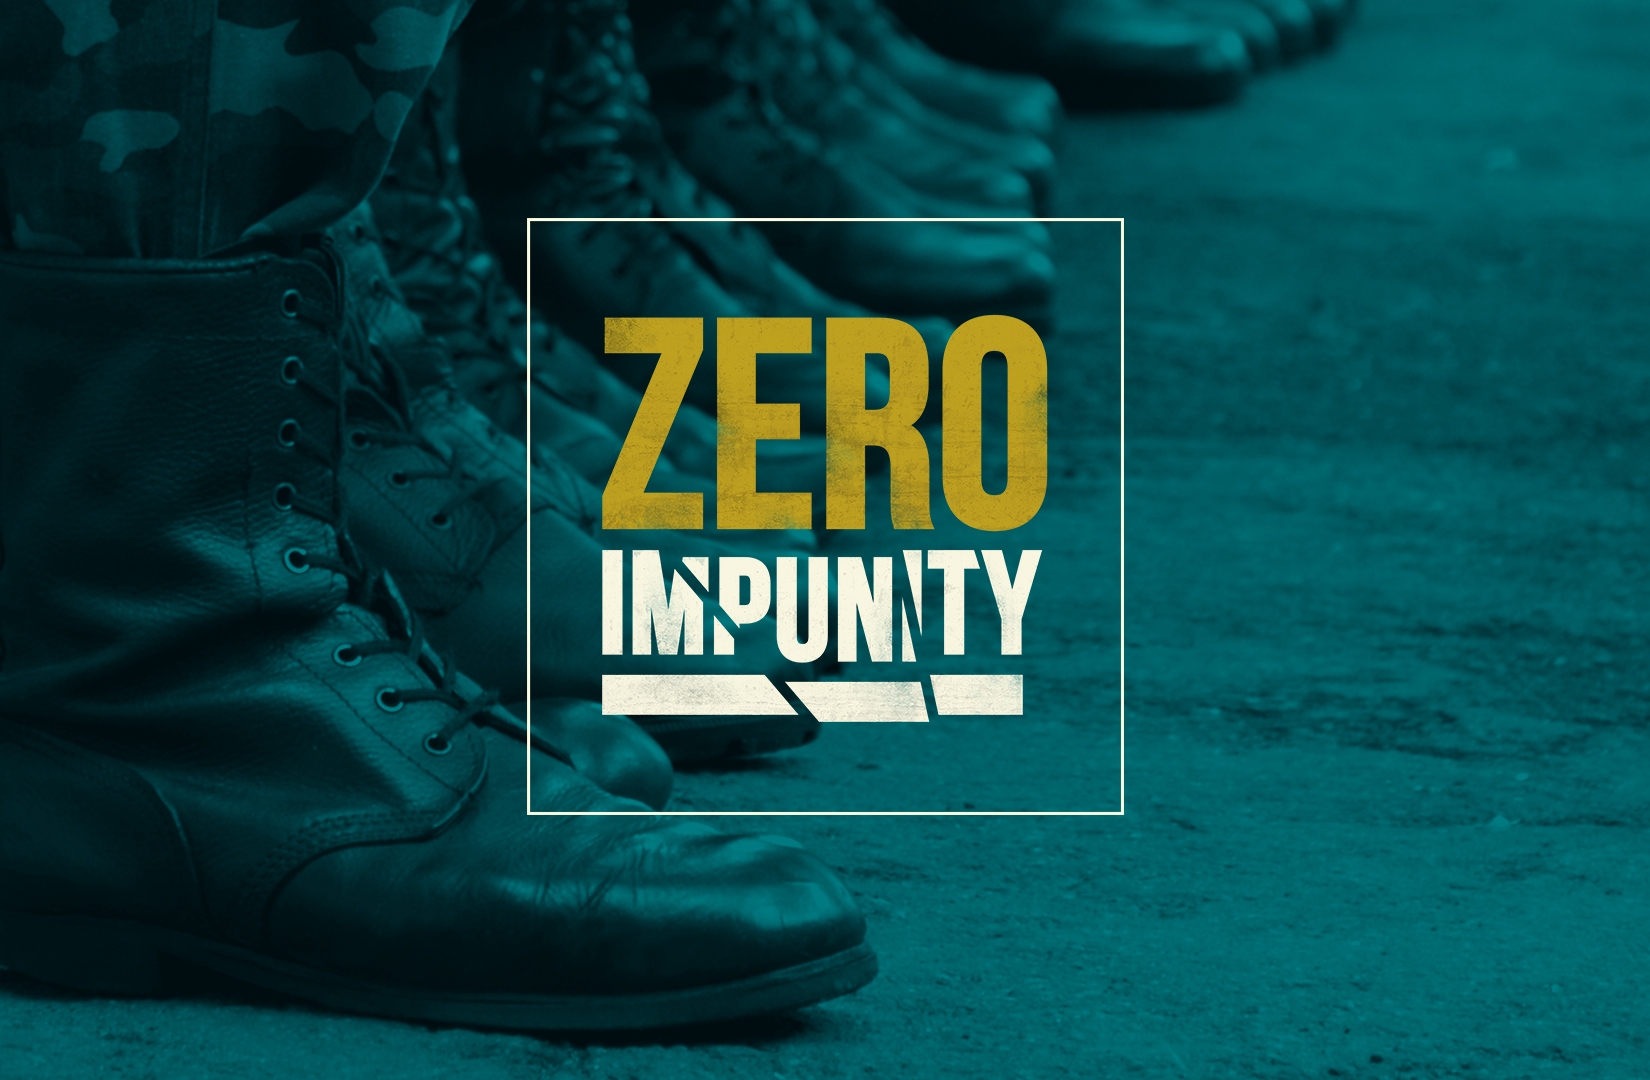 Zero Impunity, Camera Talk Productions, WebSpider Productions, 2017